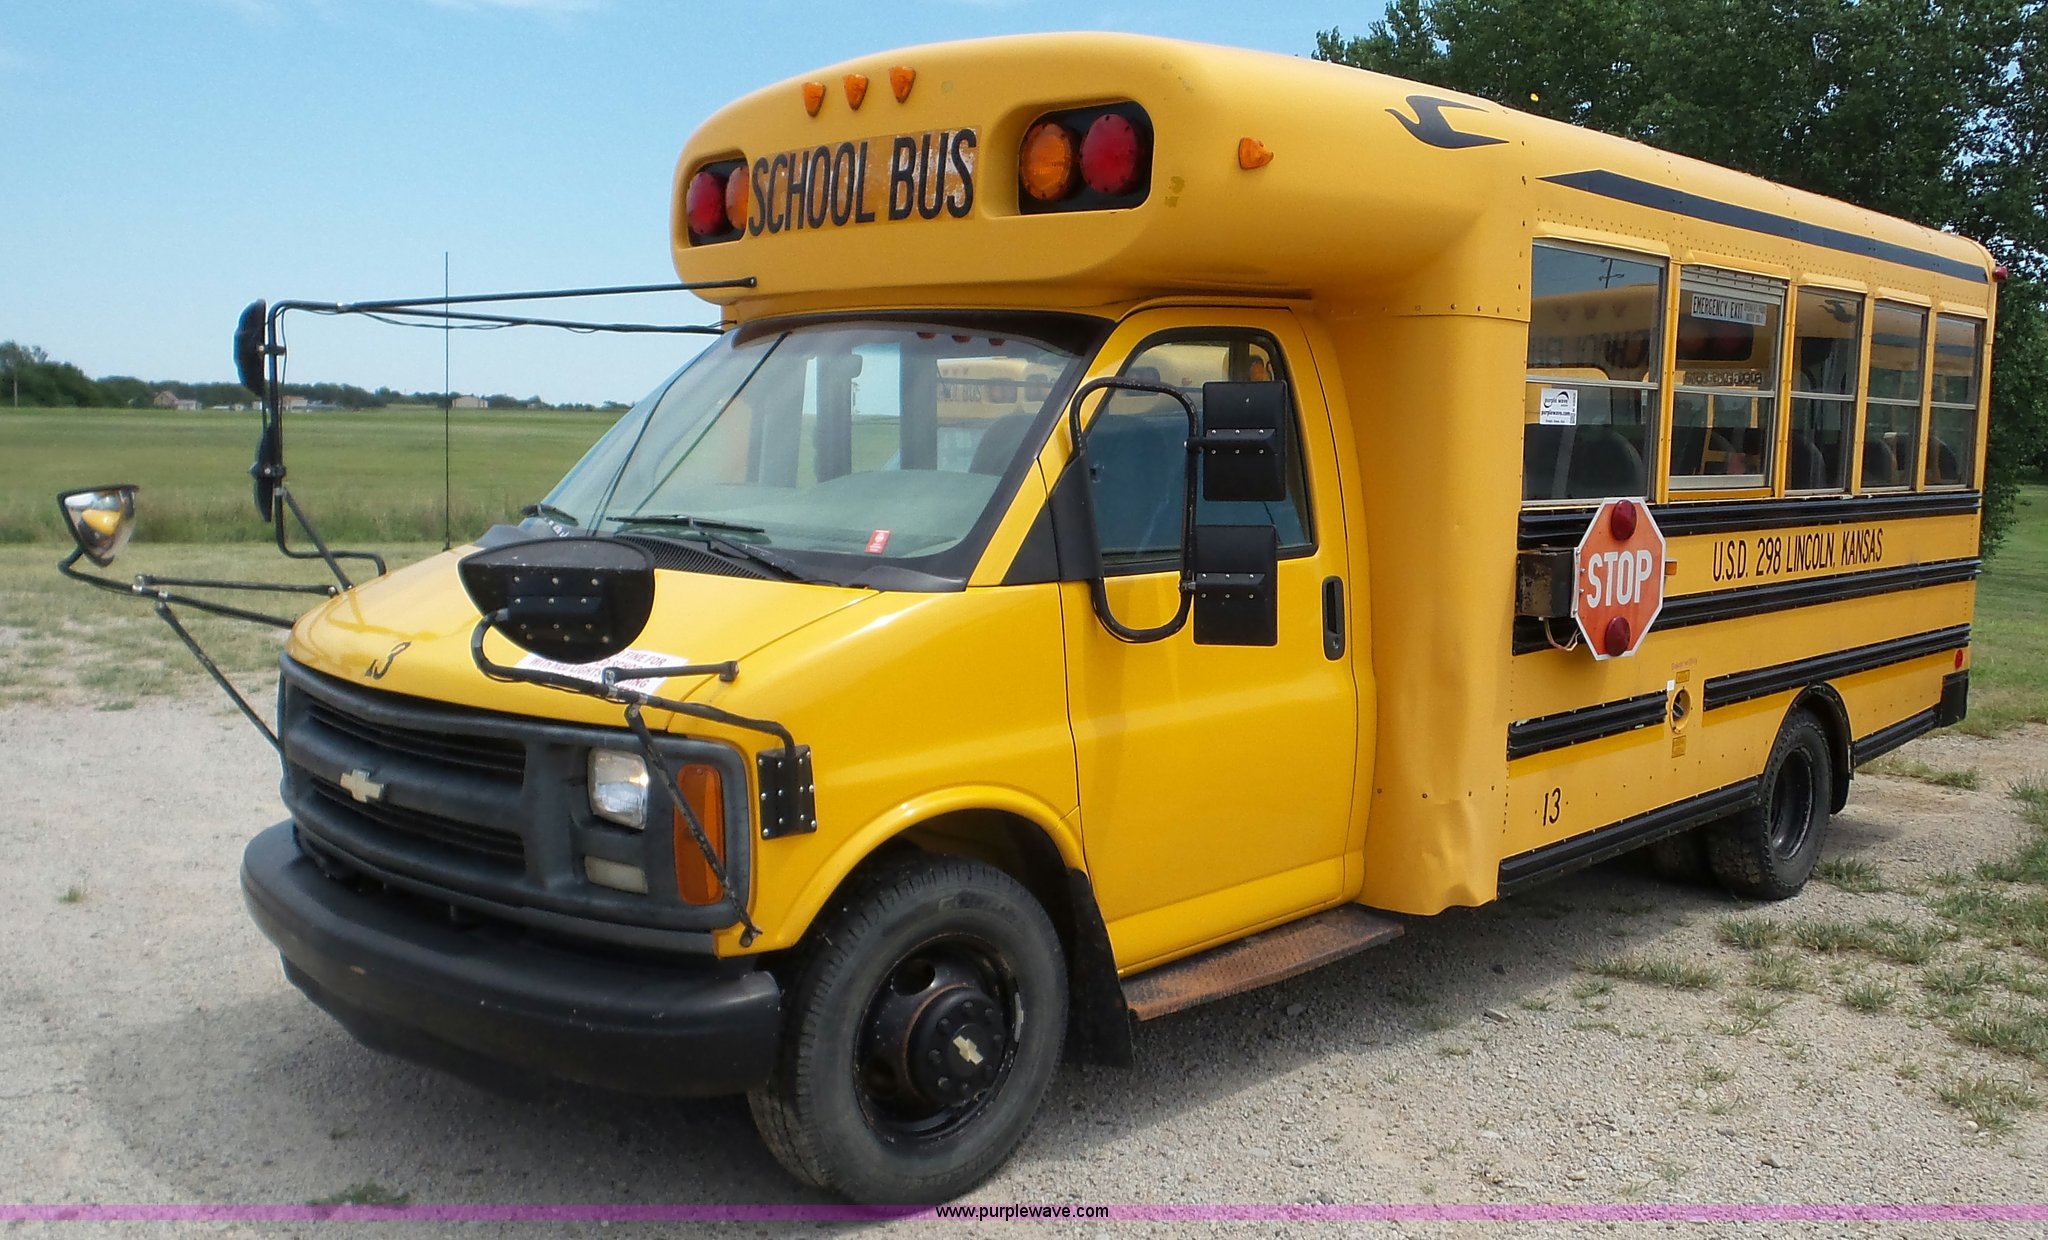 e782cf4508 2000 Chevrolet Express G3500 school bus for sale in Kansas